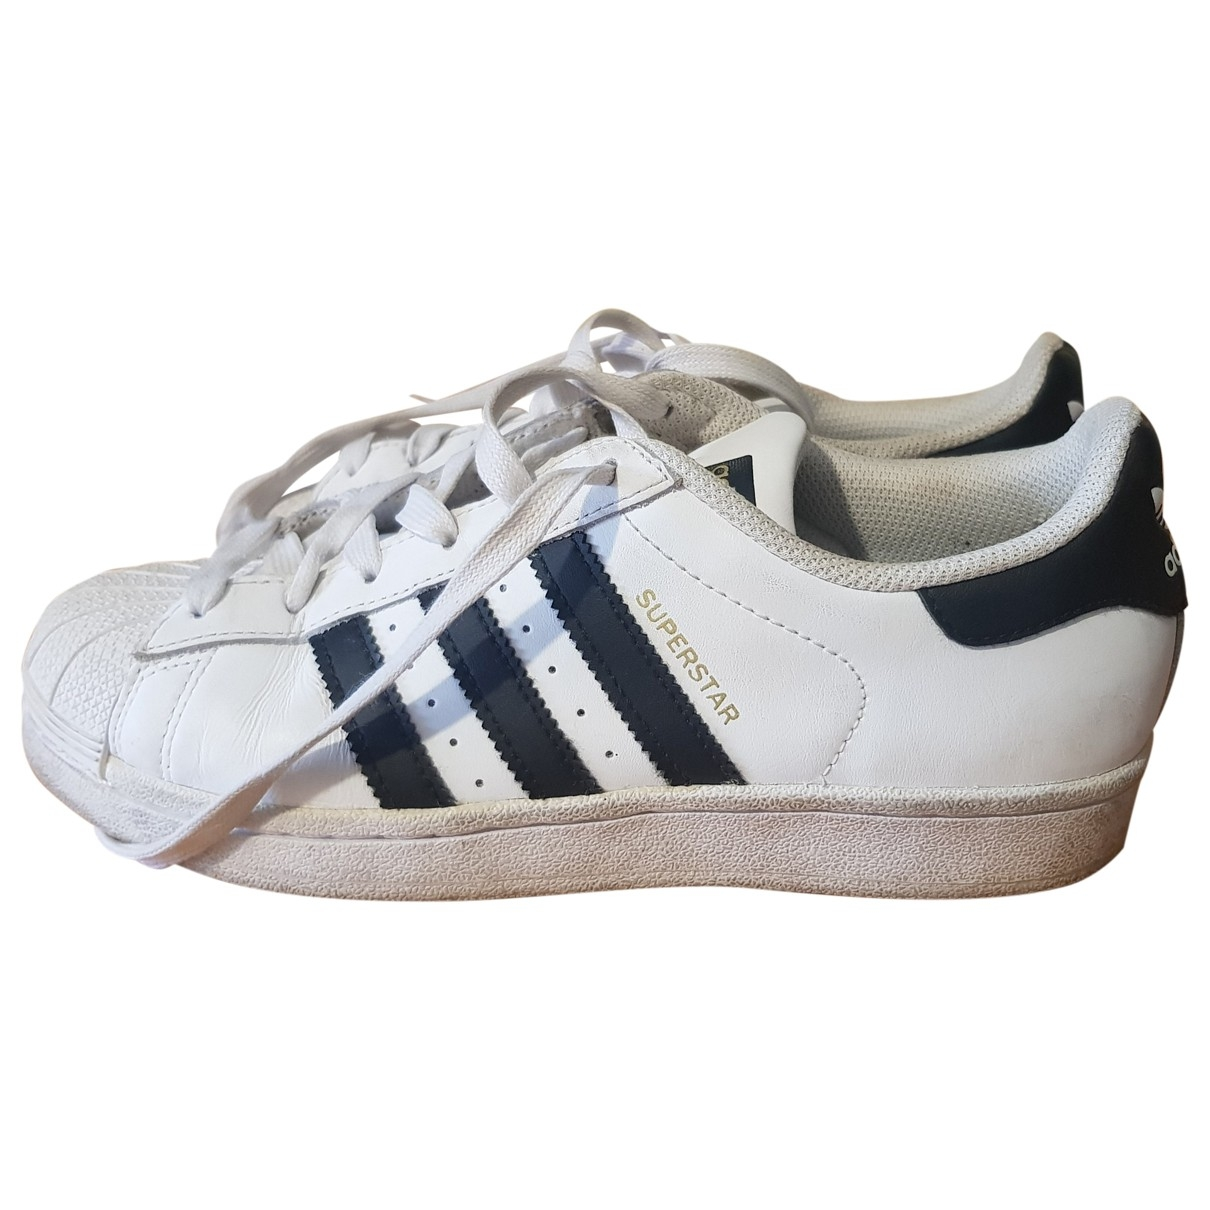 Adidas Superstar White Leather Trainers for Women 38 EU